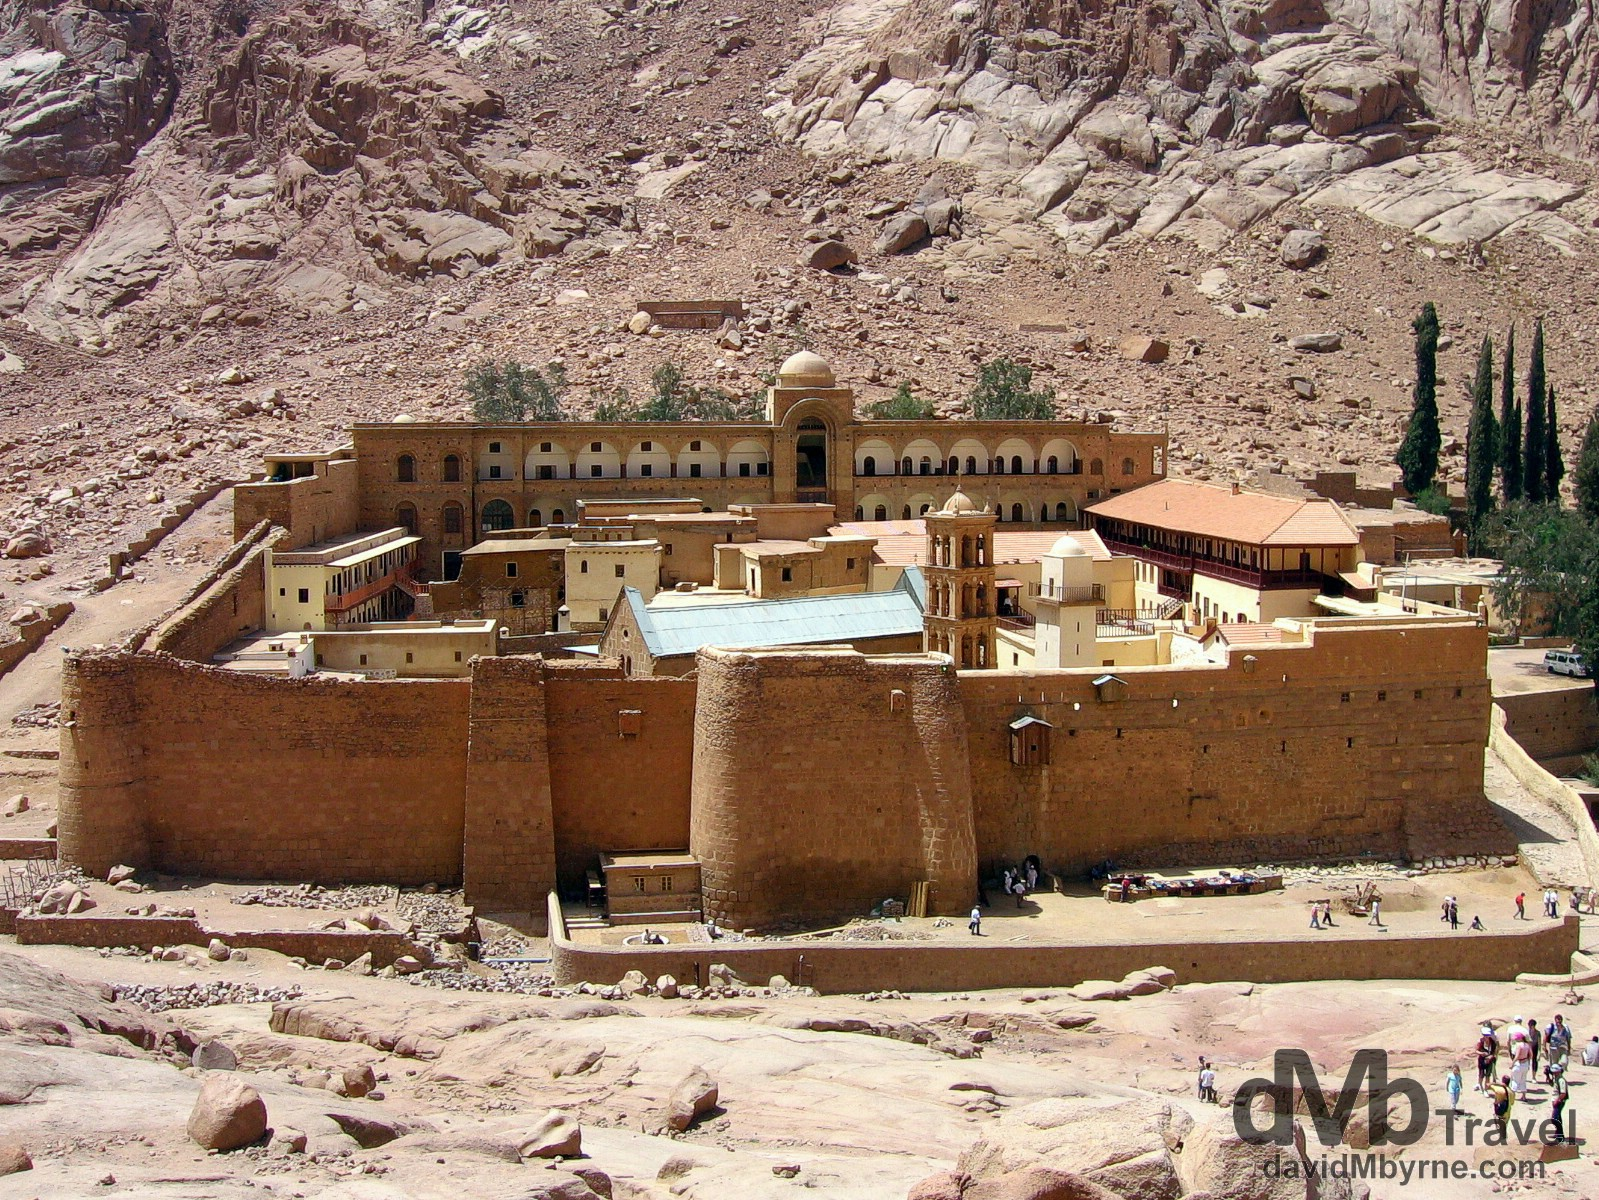 St. Katherine's monastery, and the adjacent Mt. Sinai, are located in the interior of the Sinai Peninsula in Egypt. This is one of the oldest continuously functioning Christian monasteries in the world; the Byzantine empress Helena had a small chapel built on the site where it was believed God spoke to Moses via the burning bush. The monastery, a UNESCO World Heritage Site, is dedicated to St Katherine, the legendary martyr from Alexandria who was tortured on a spiked wheel and then beheaded, and is home to 22 Greek Orthodox monks. The monastery library preserves the second largest collection of early codices and manuscripts in the world, outnumbered only by the Vatican Library, and it also houses some irreplaceable works of art. St. Katherine's Monastery, Sinai Peninsula, Egypt. April 22nd 2008.